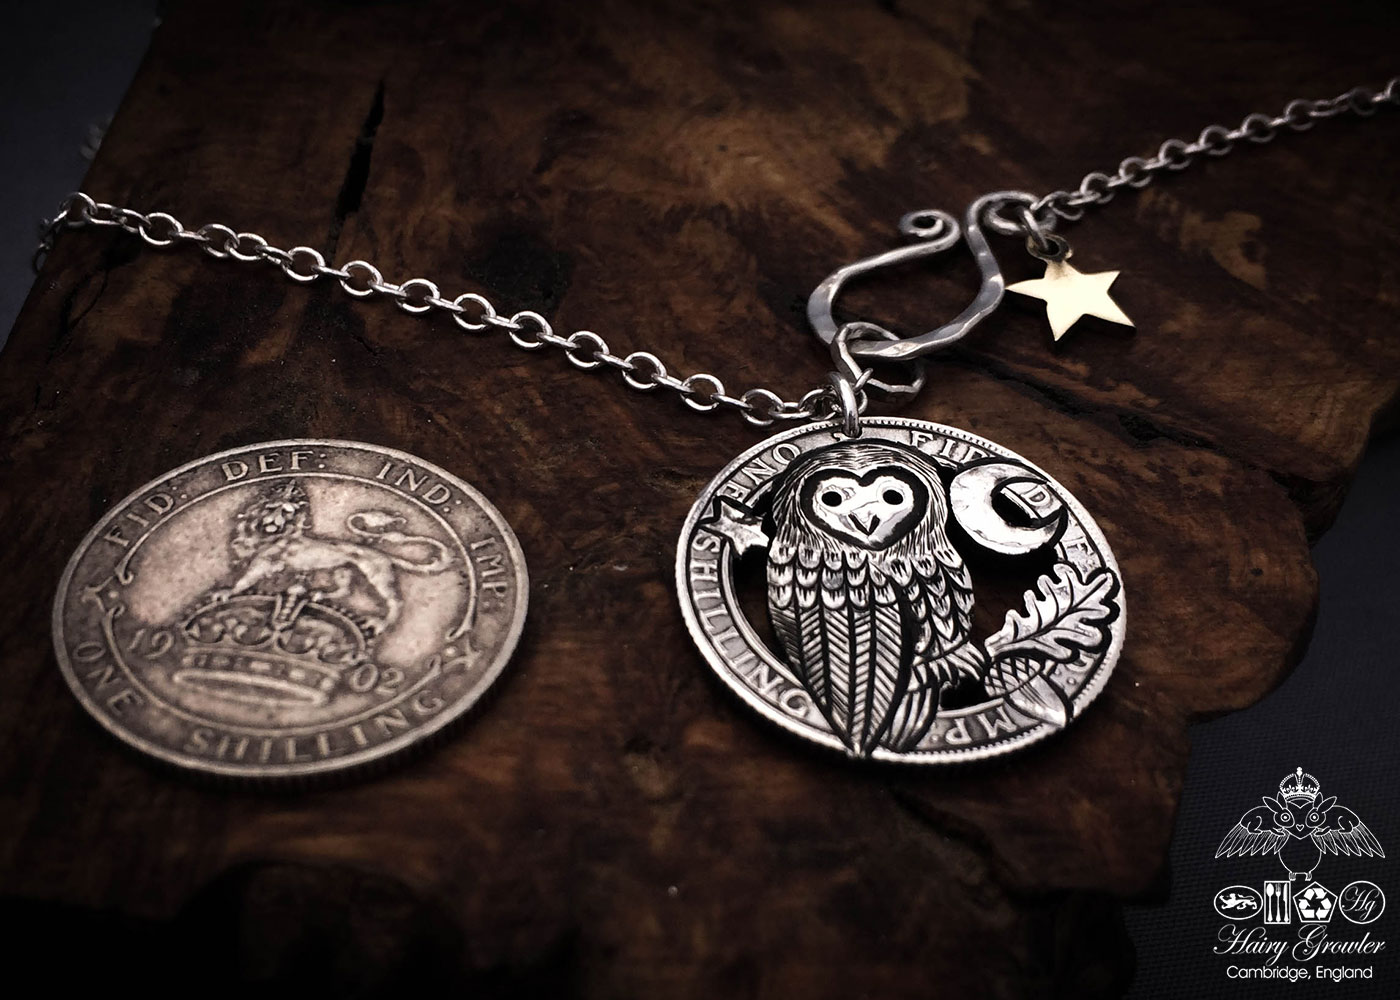 Coin owl handmade and recycled silver shilling The Silver Shilling collection. silver owl necklace totally handcrafted and recycled from old sterling silver shilling coins. Designed and created by Hairy Growler Jewellery, Cambridge, UK. necklace